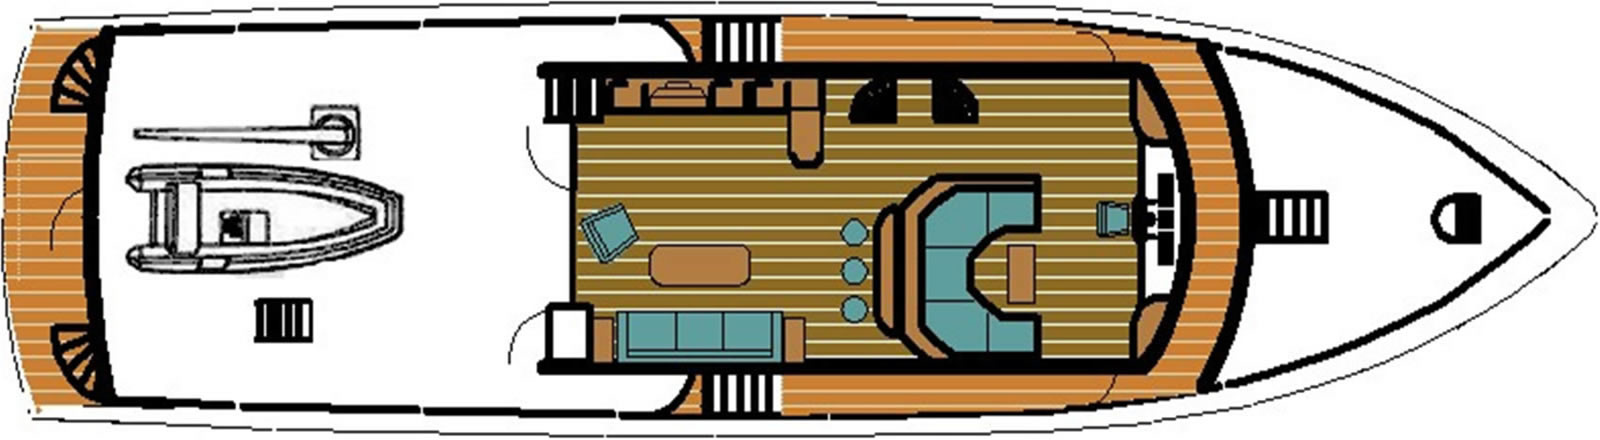 Ruby Expedition 80 House Forward Pilothouse Deck